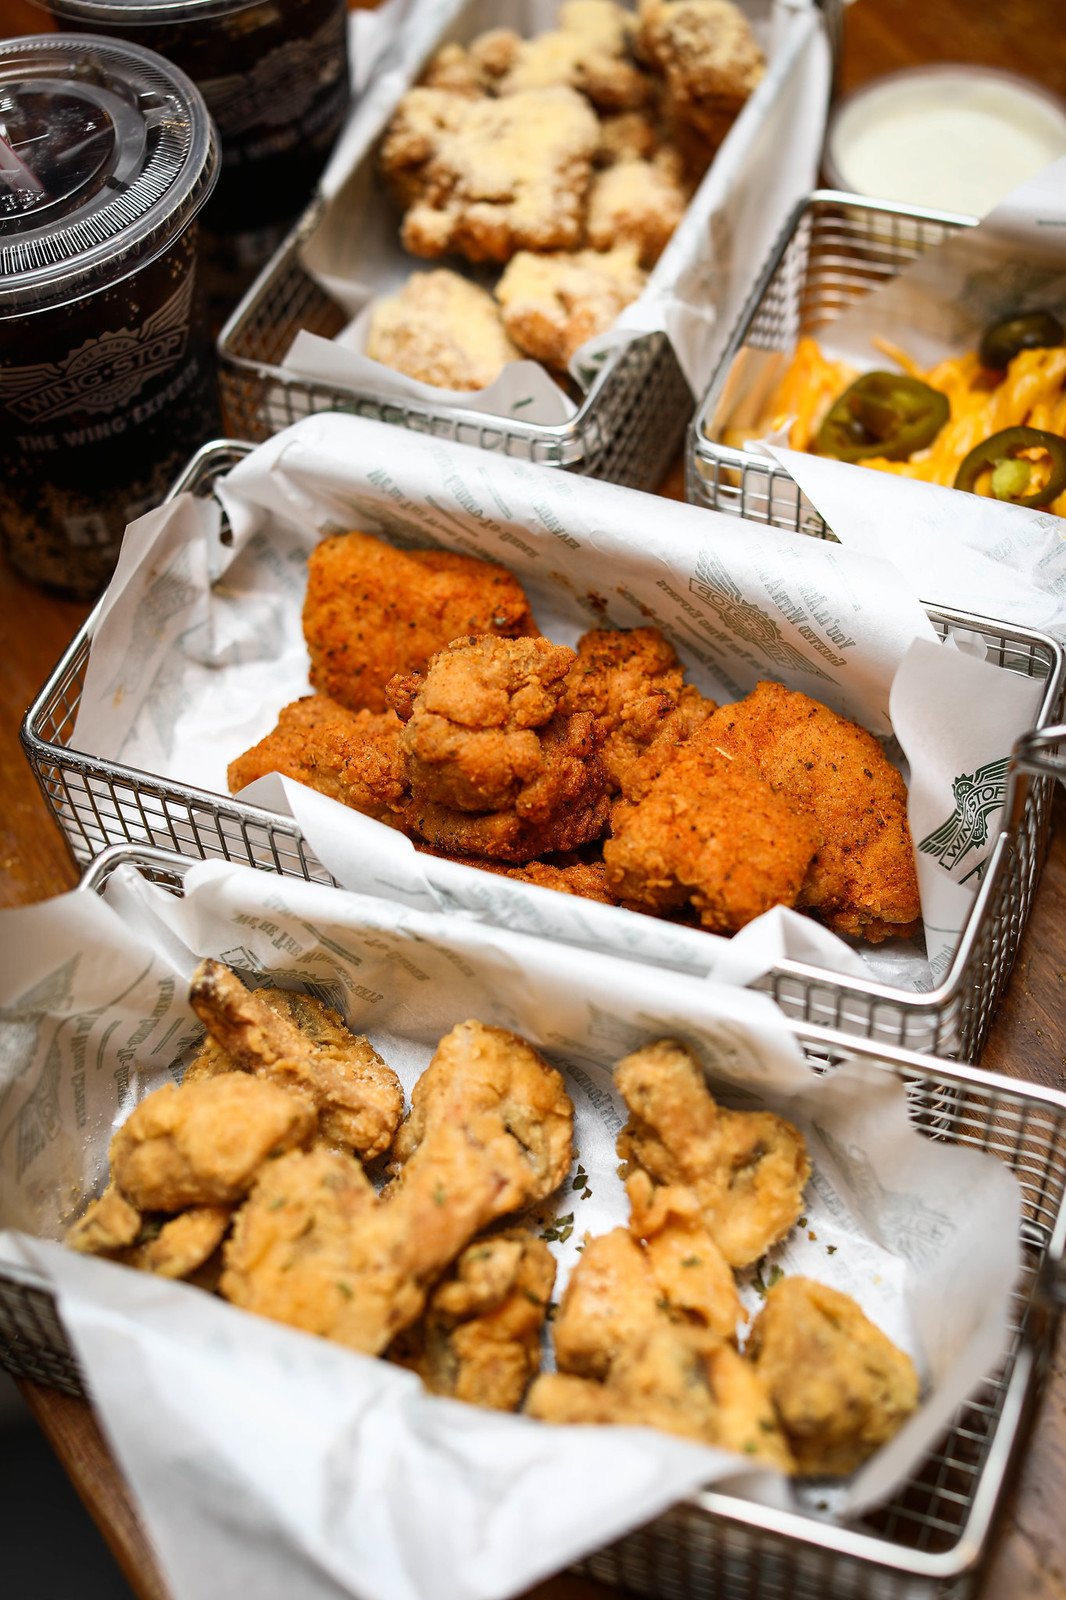 City Square Mall Food: WingStop